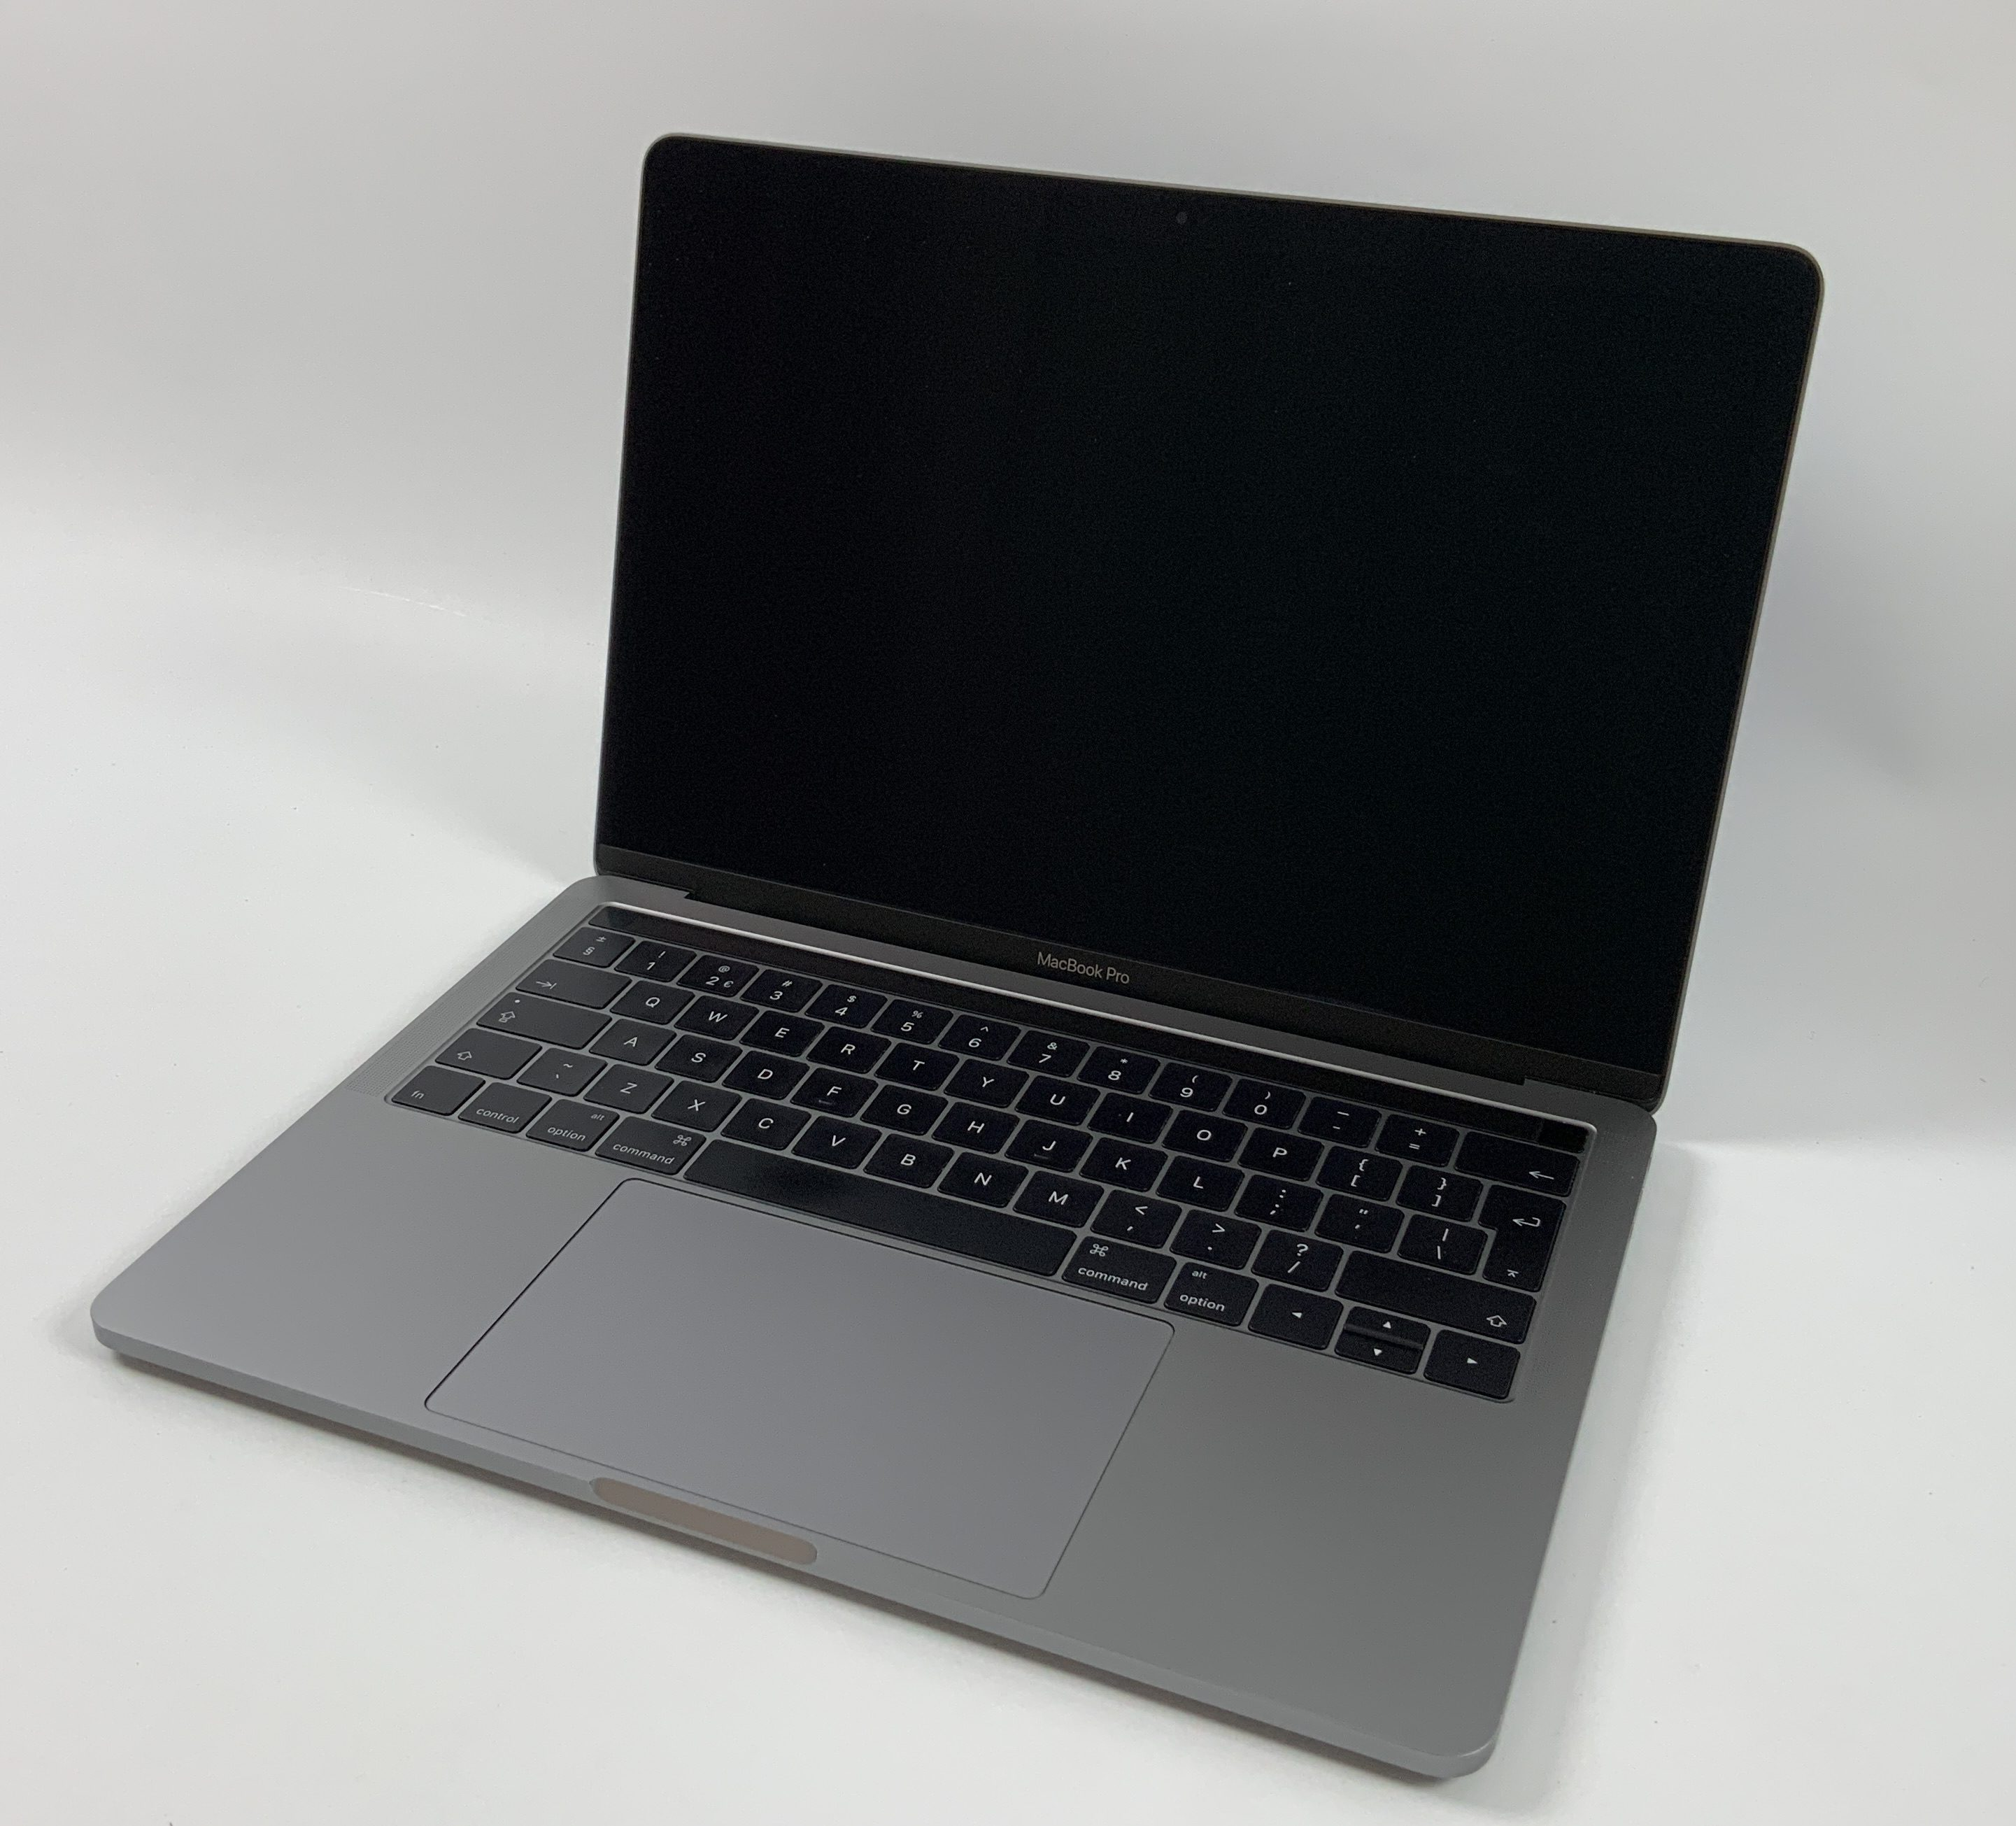 "MacBook Pro 13"" 4TBT Late 2016 (Intel Core i5 2.9 GHz 8 GB RAM 512 GB SSD), Space Gray, Intel Core i5 2.9 GHz, 8 GB RAM, 512 GB SSD, Bild 1"